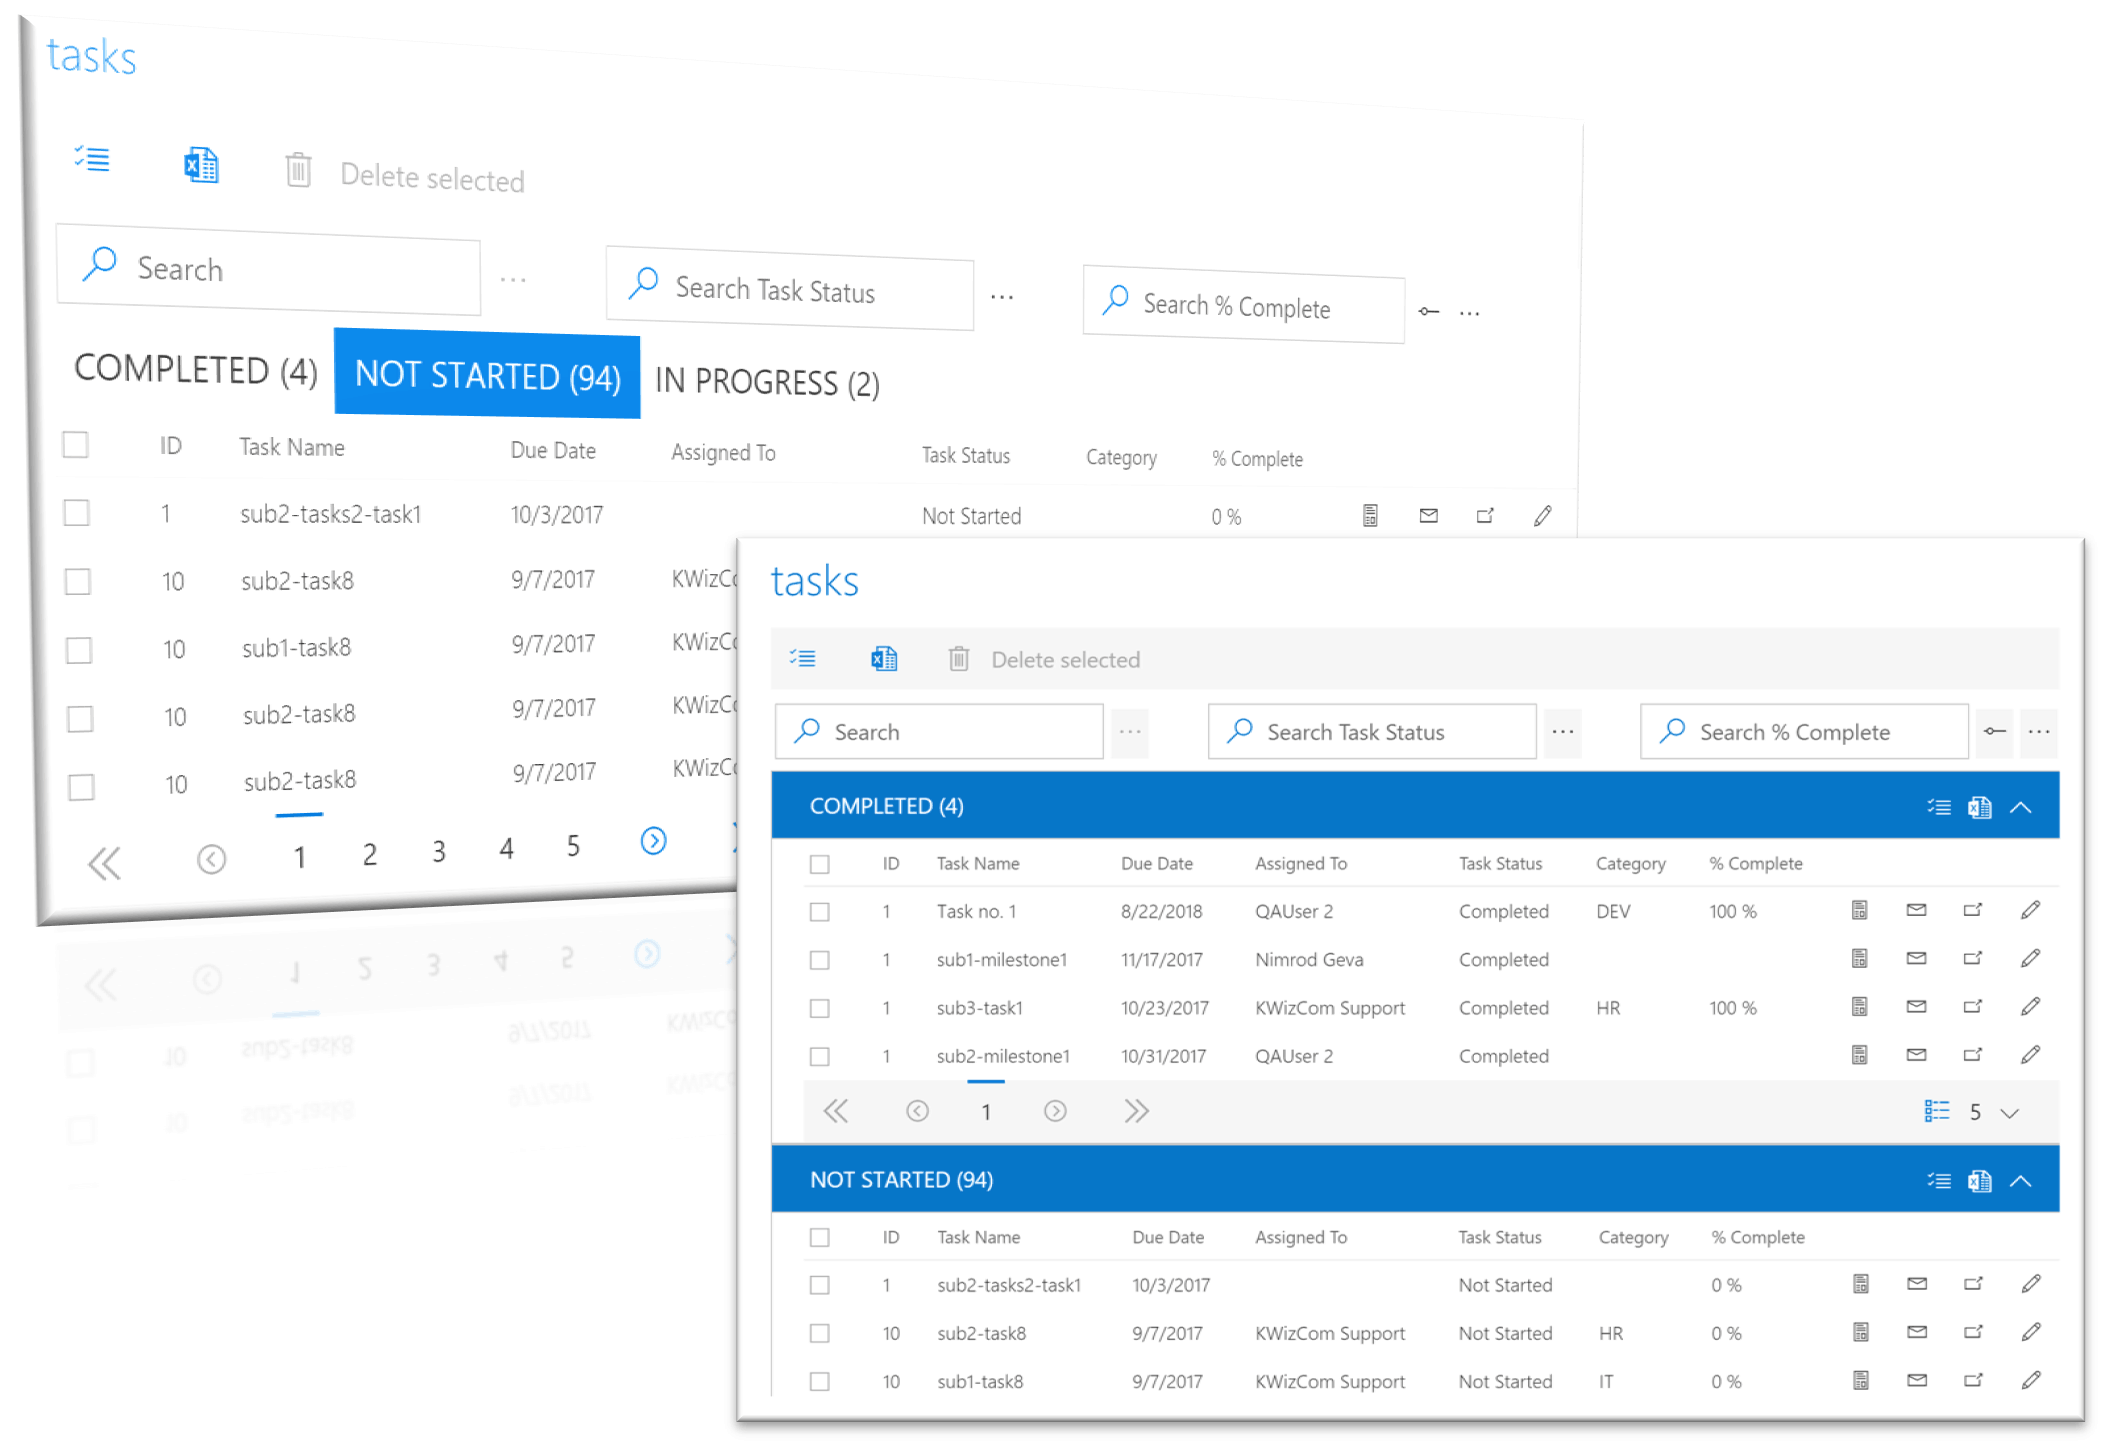 SharePoint tabs and groups